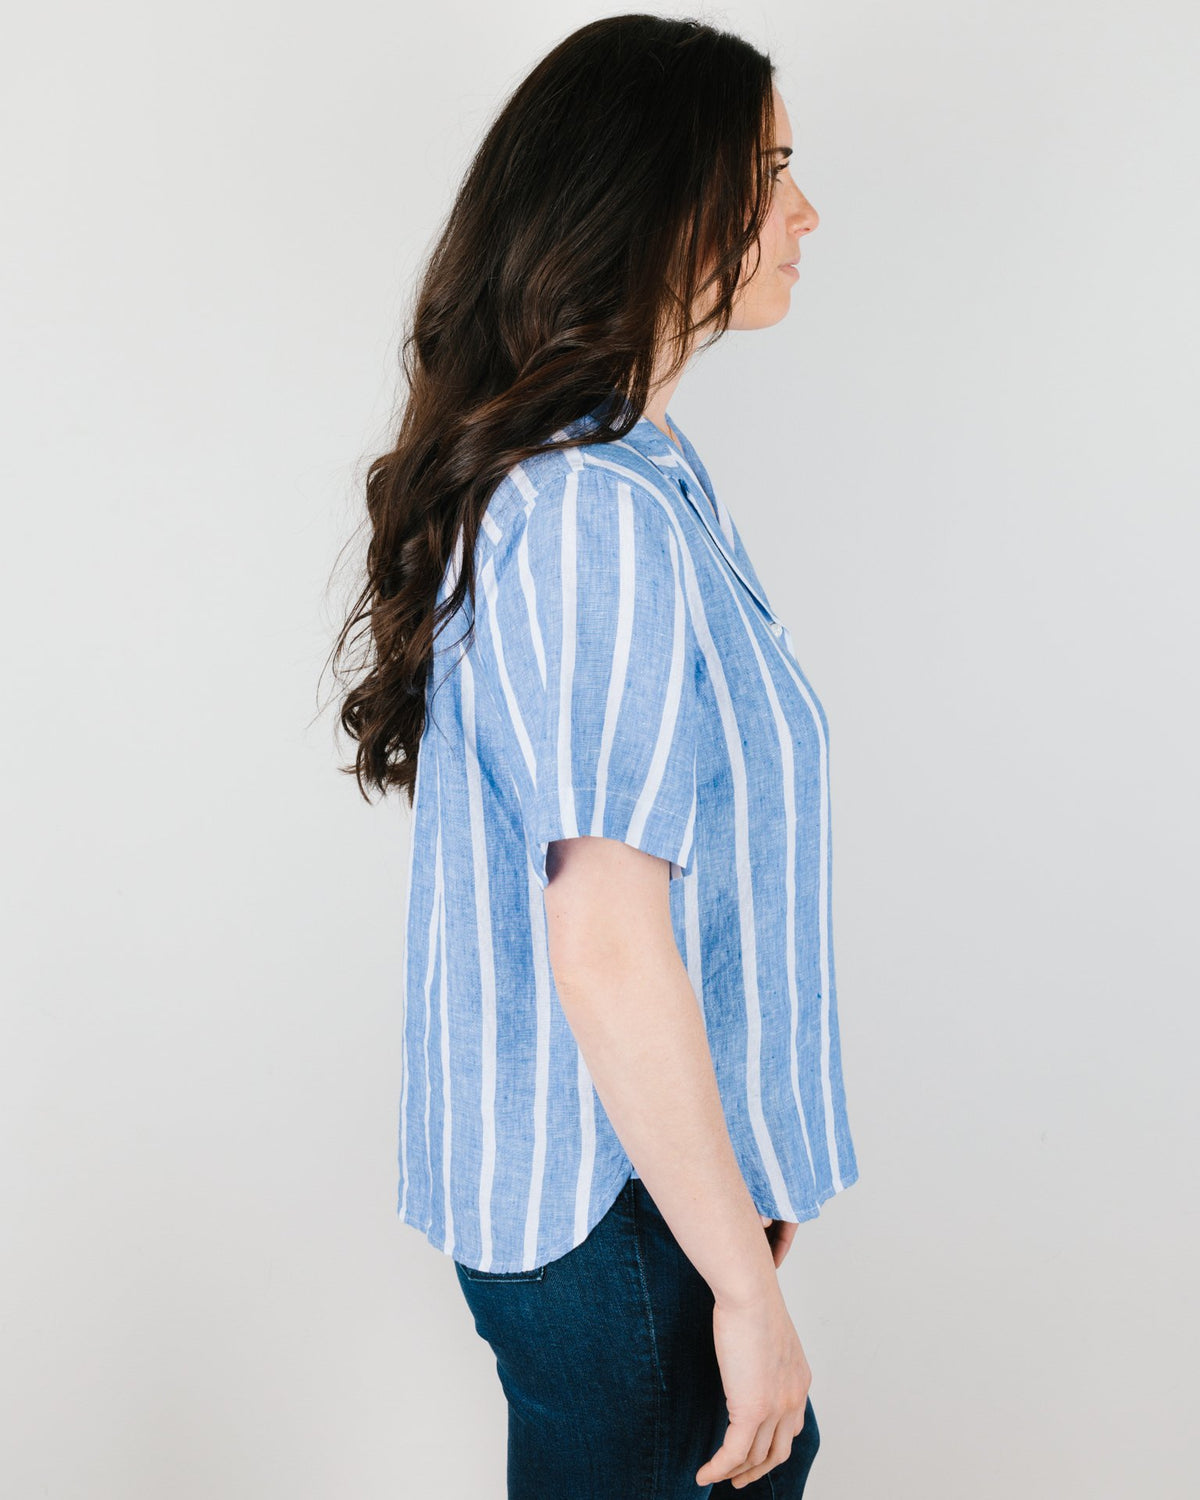 Trovata Clothing Margot Camp Shirt in Blue Awning Stripe